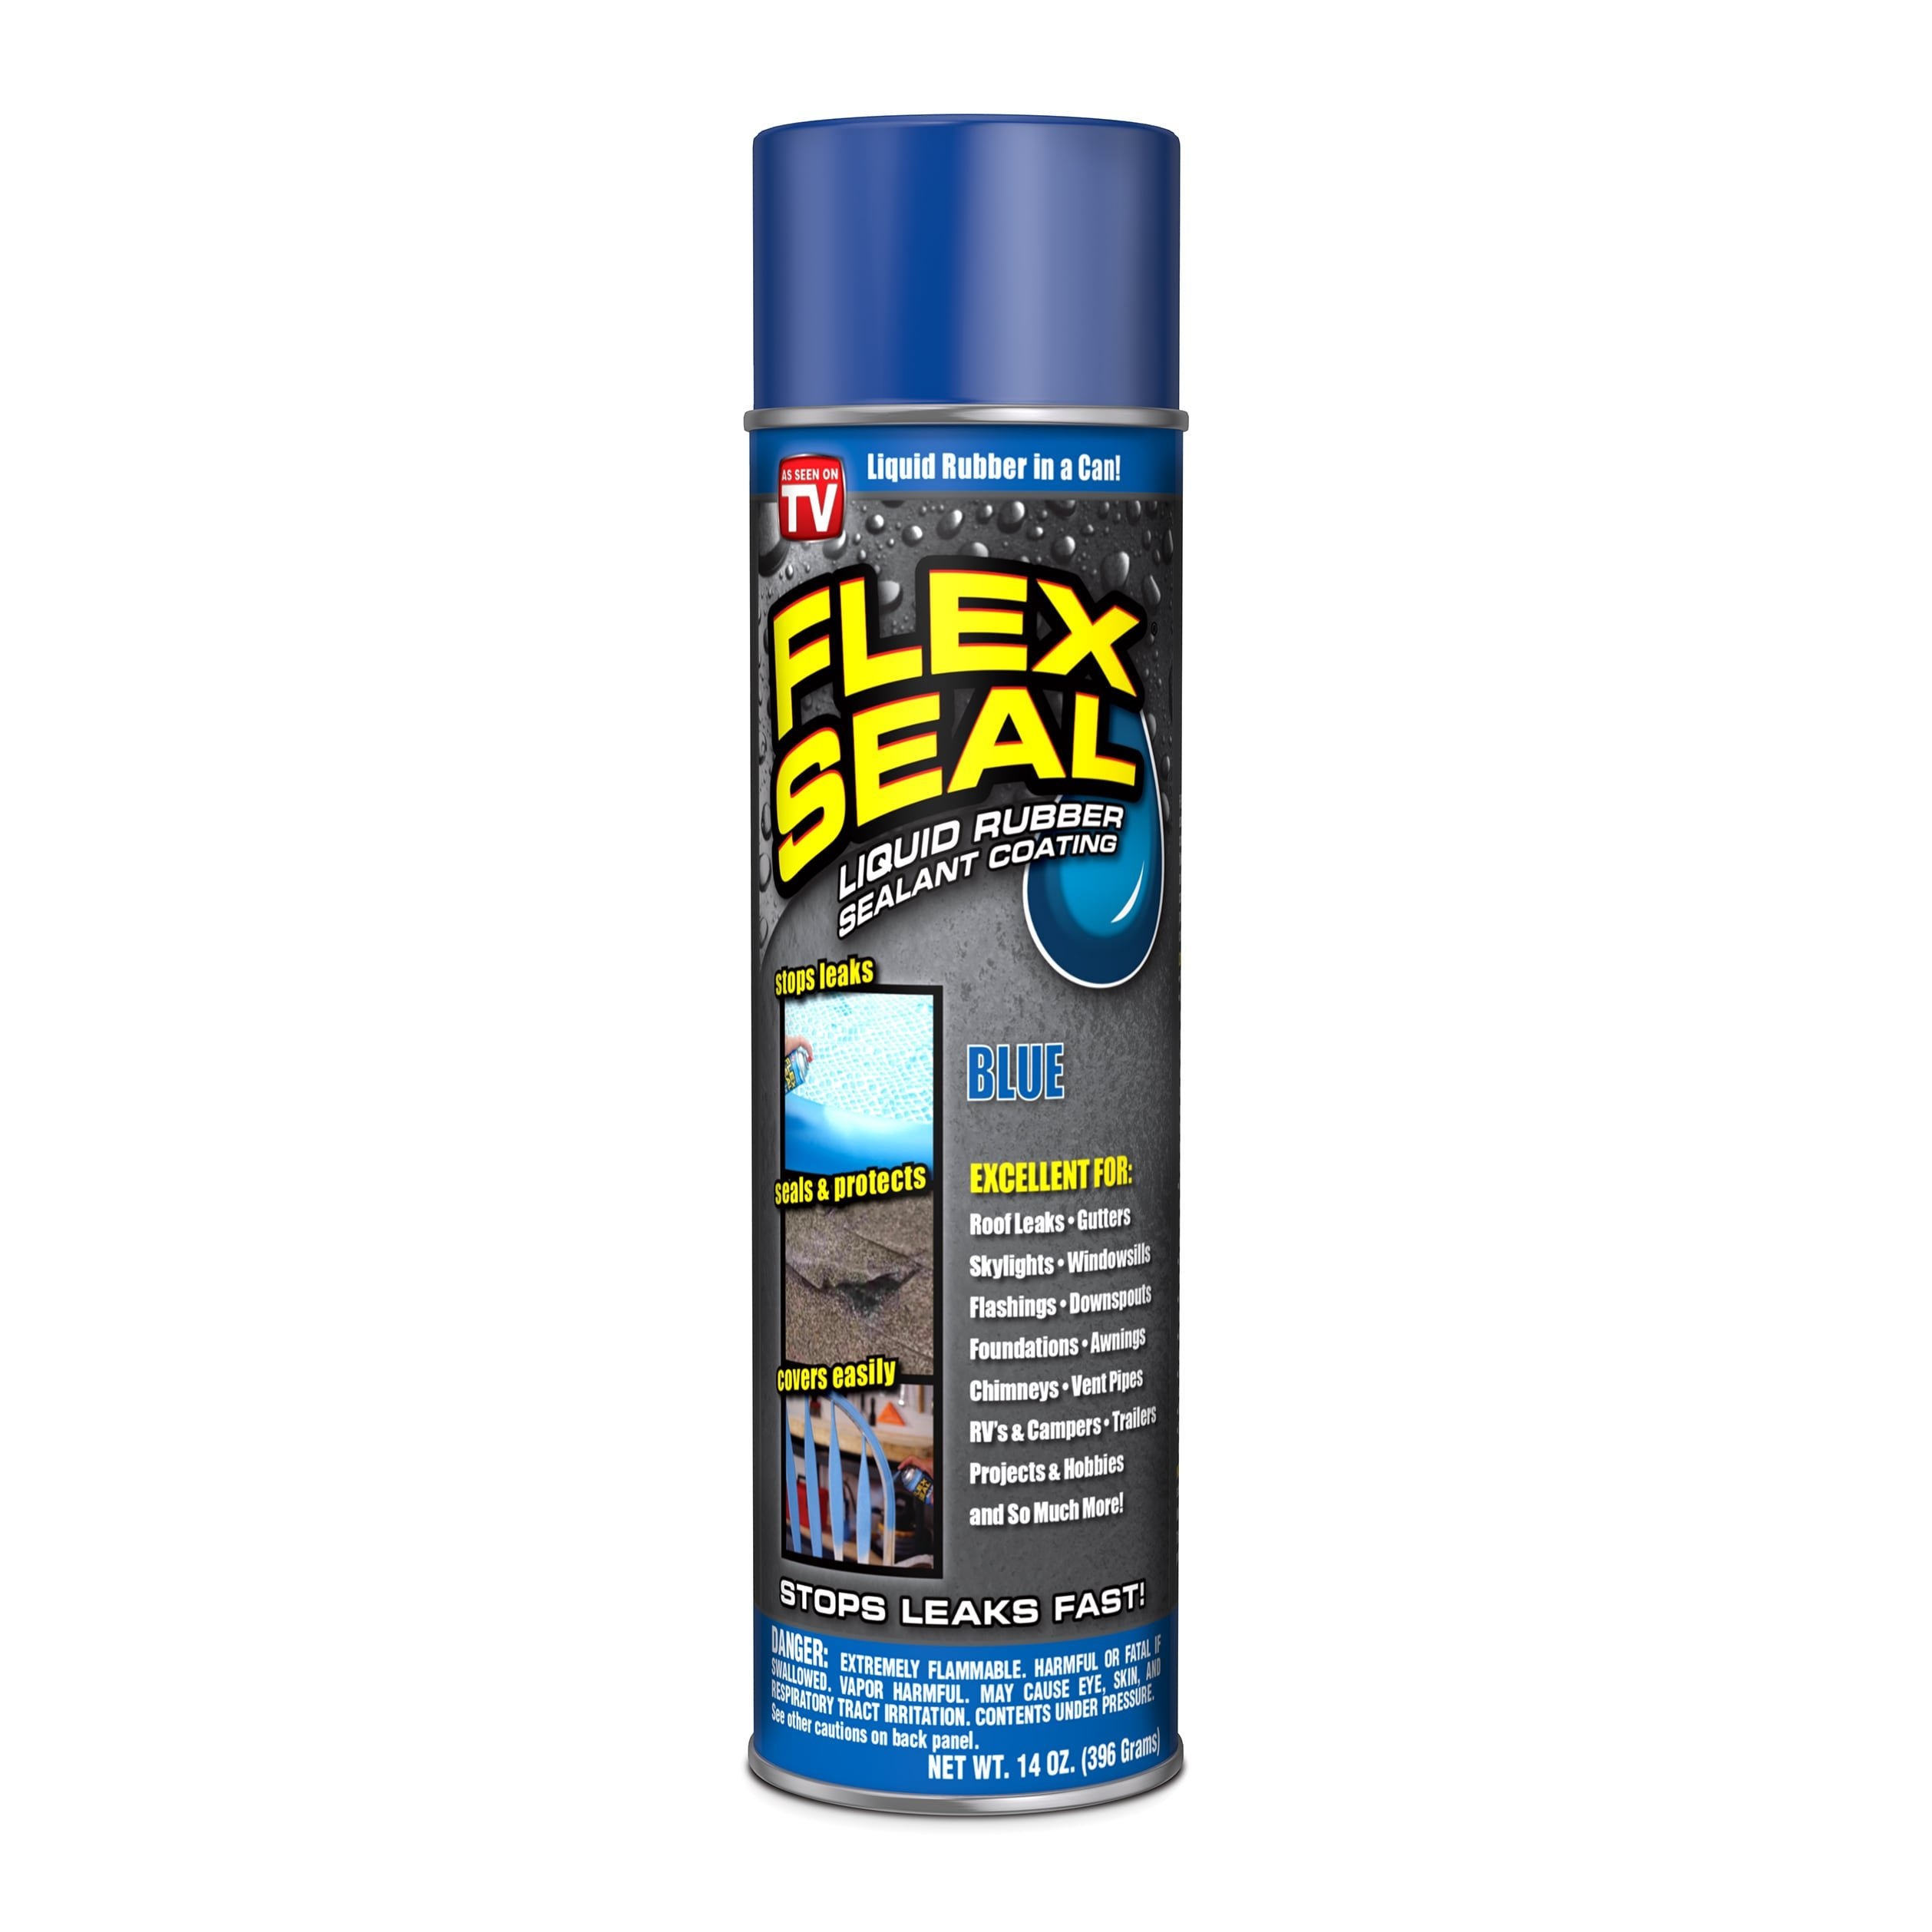 Flex Seal Spray Rubber Sealant Coating, 14-oz, Blue